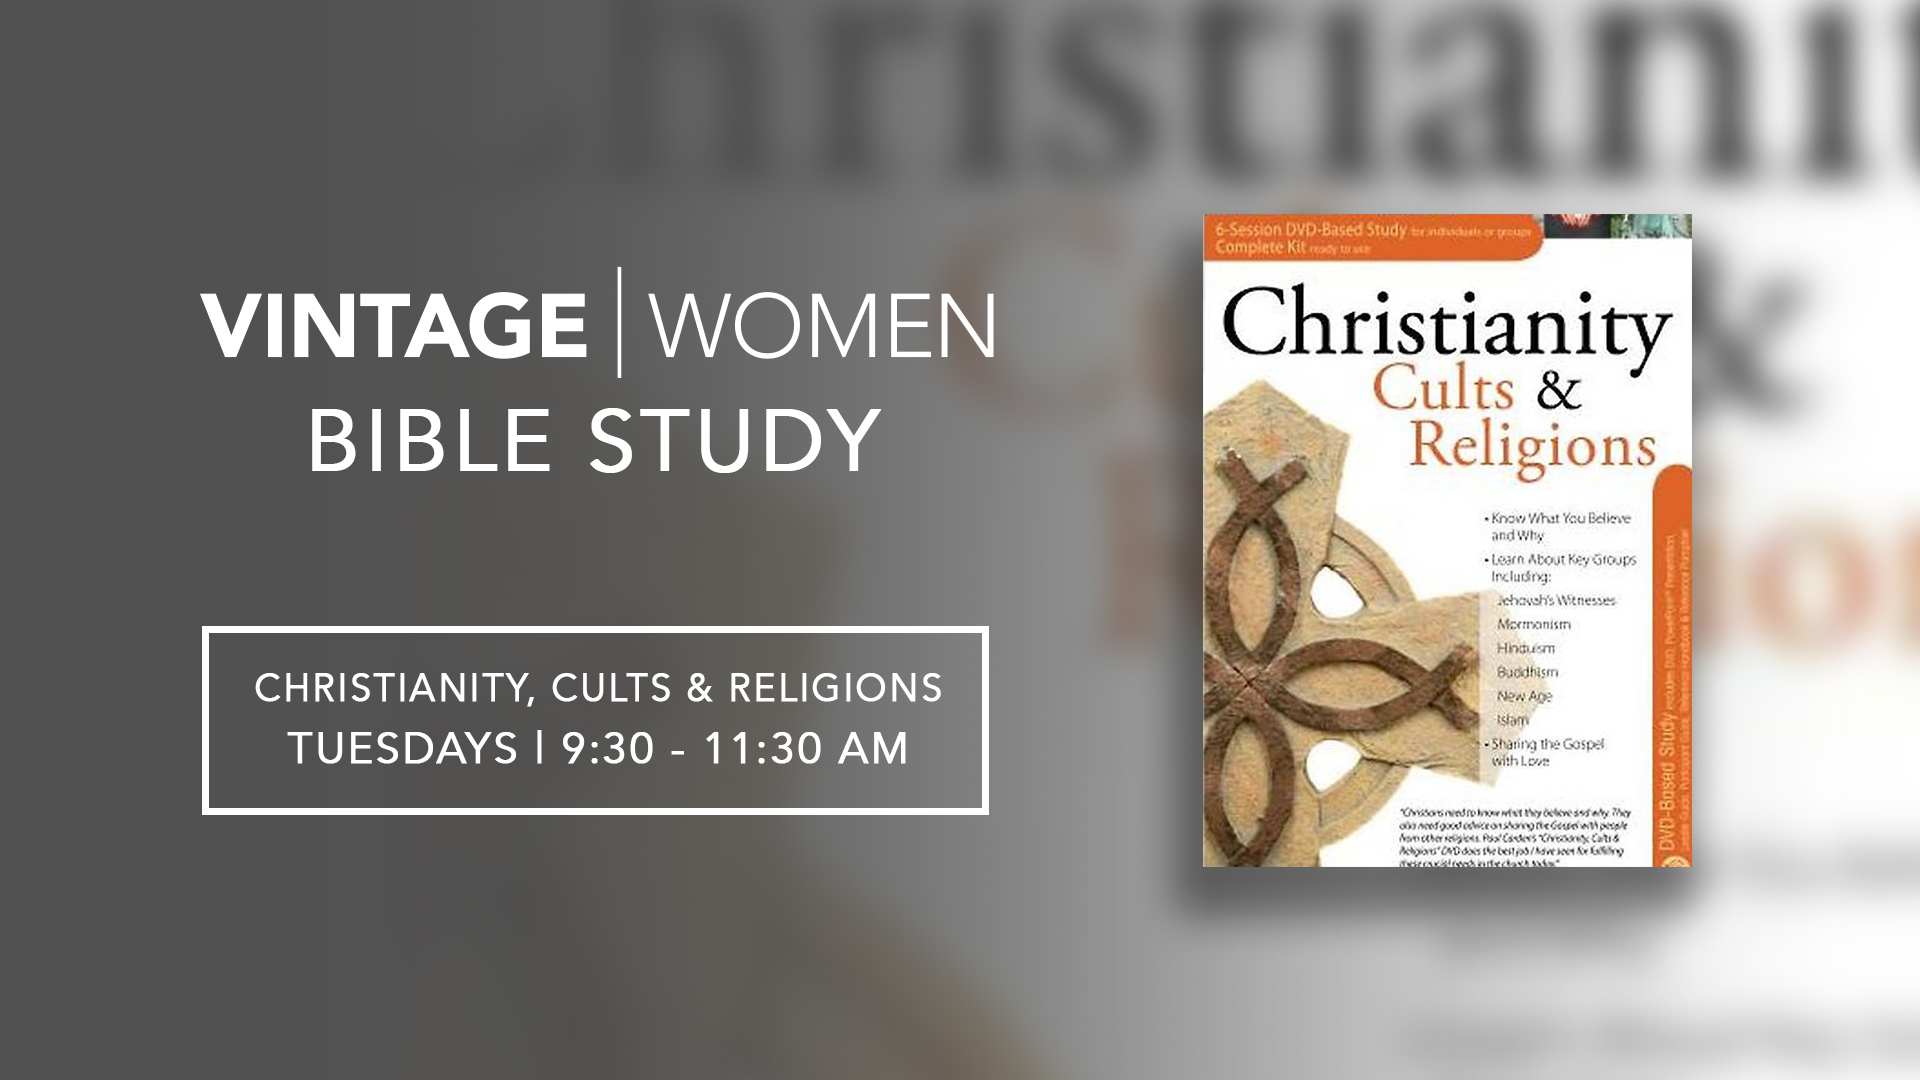 BibleStudy_-Christianity,-Cults-&-Religions.jpg